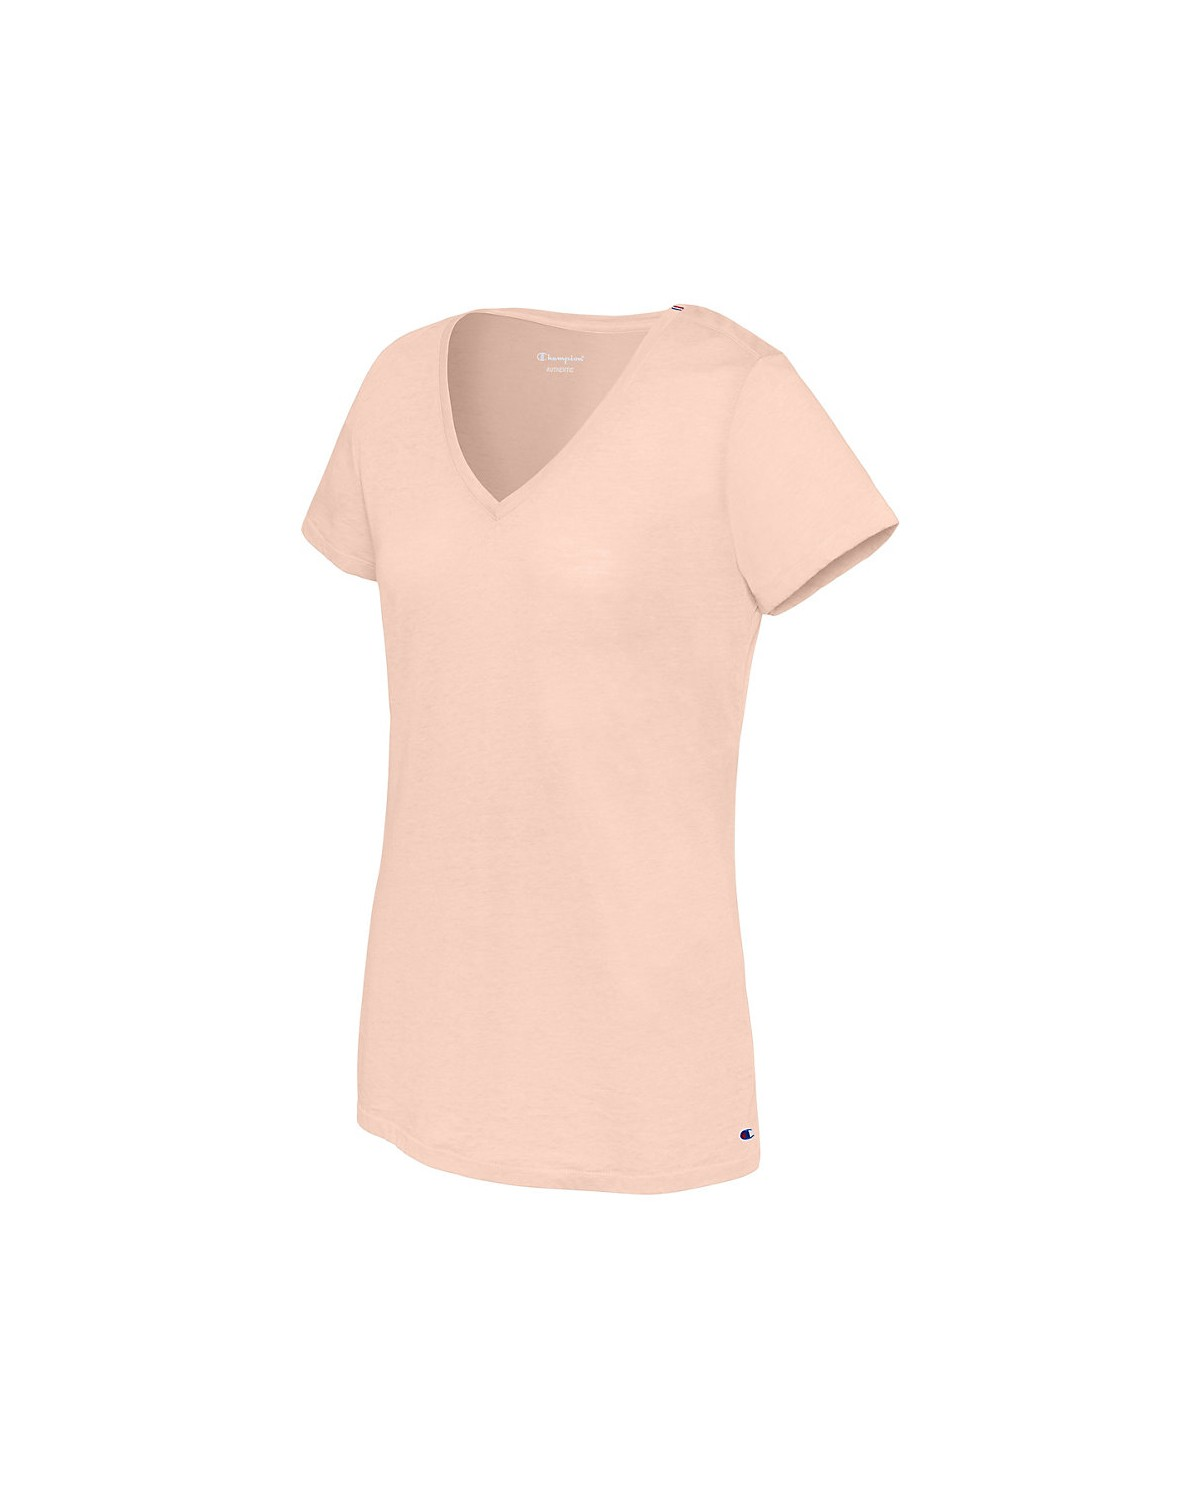 W0821 Champion Pale Blush Pink